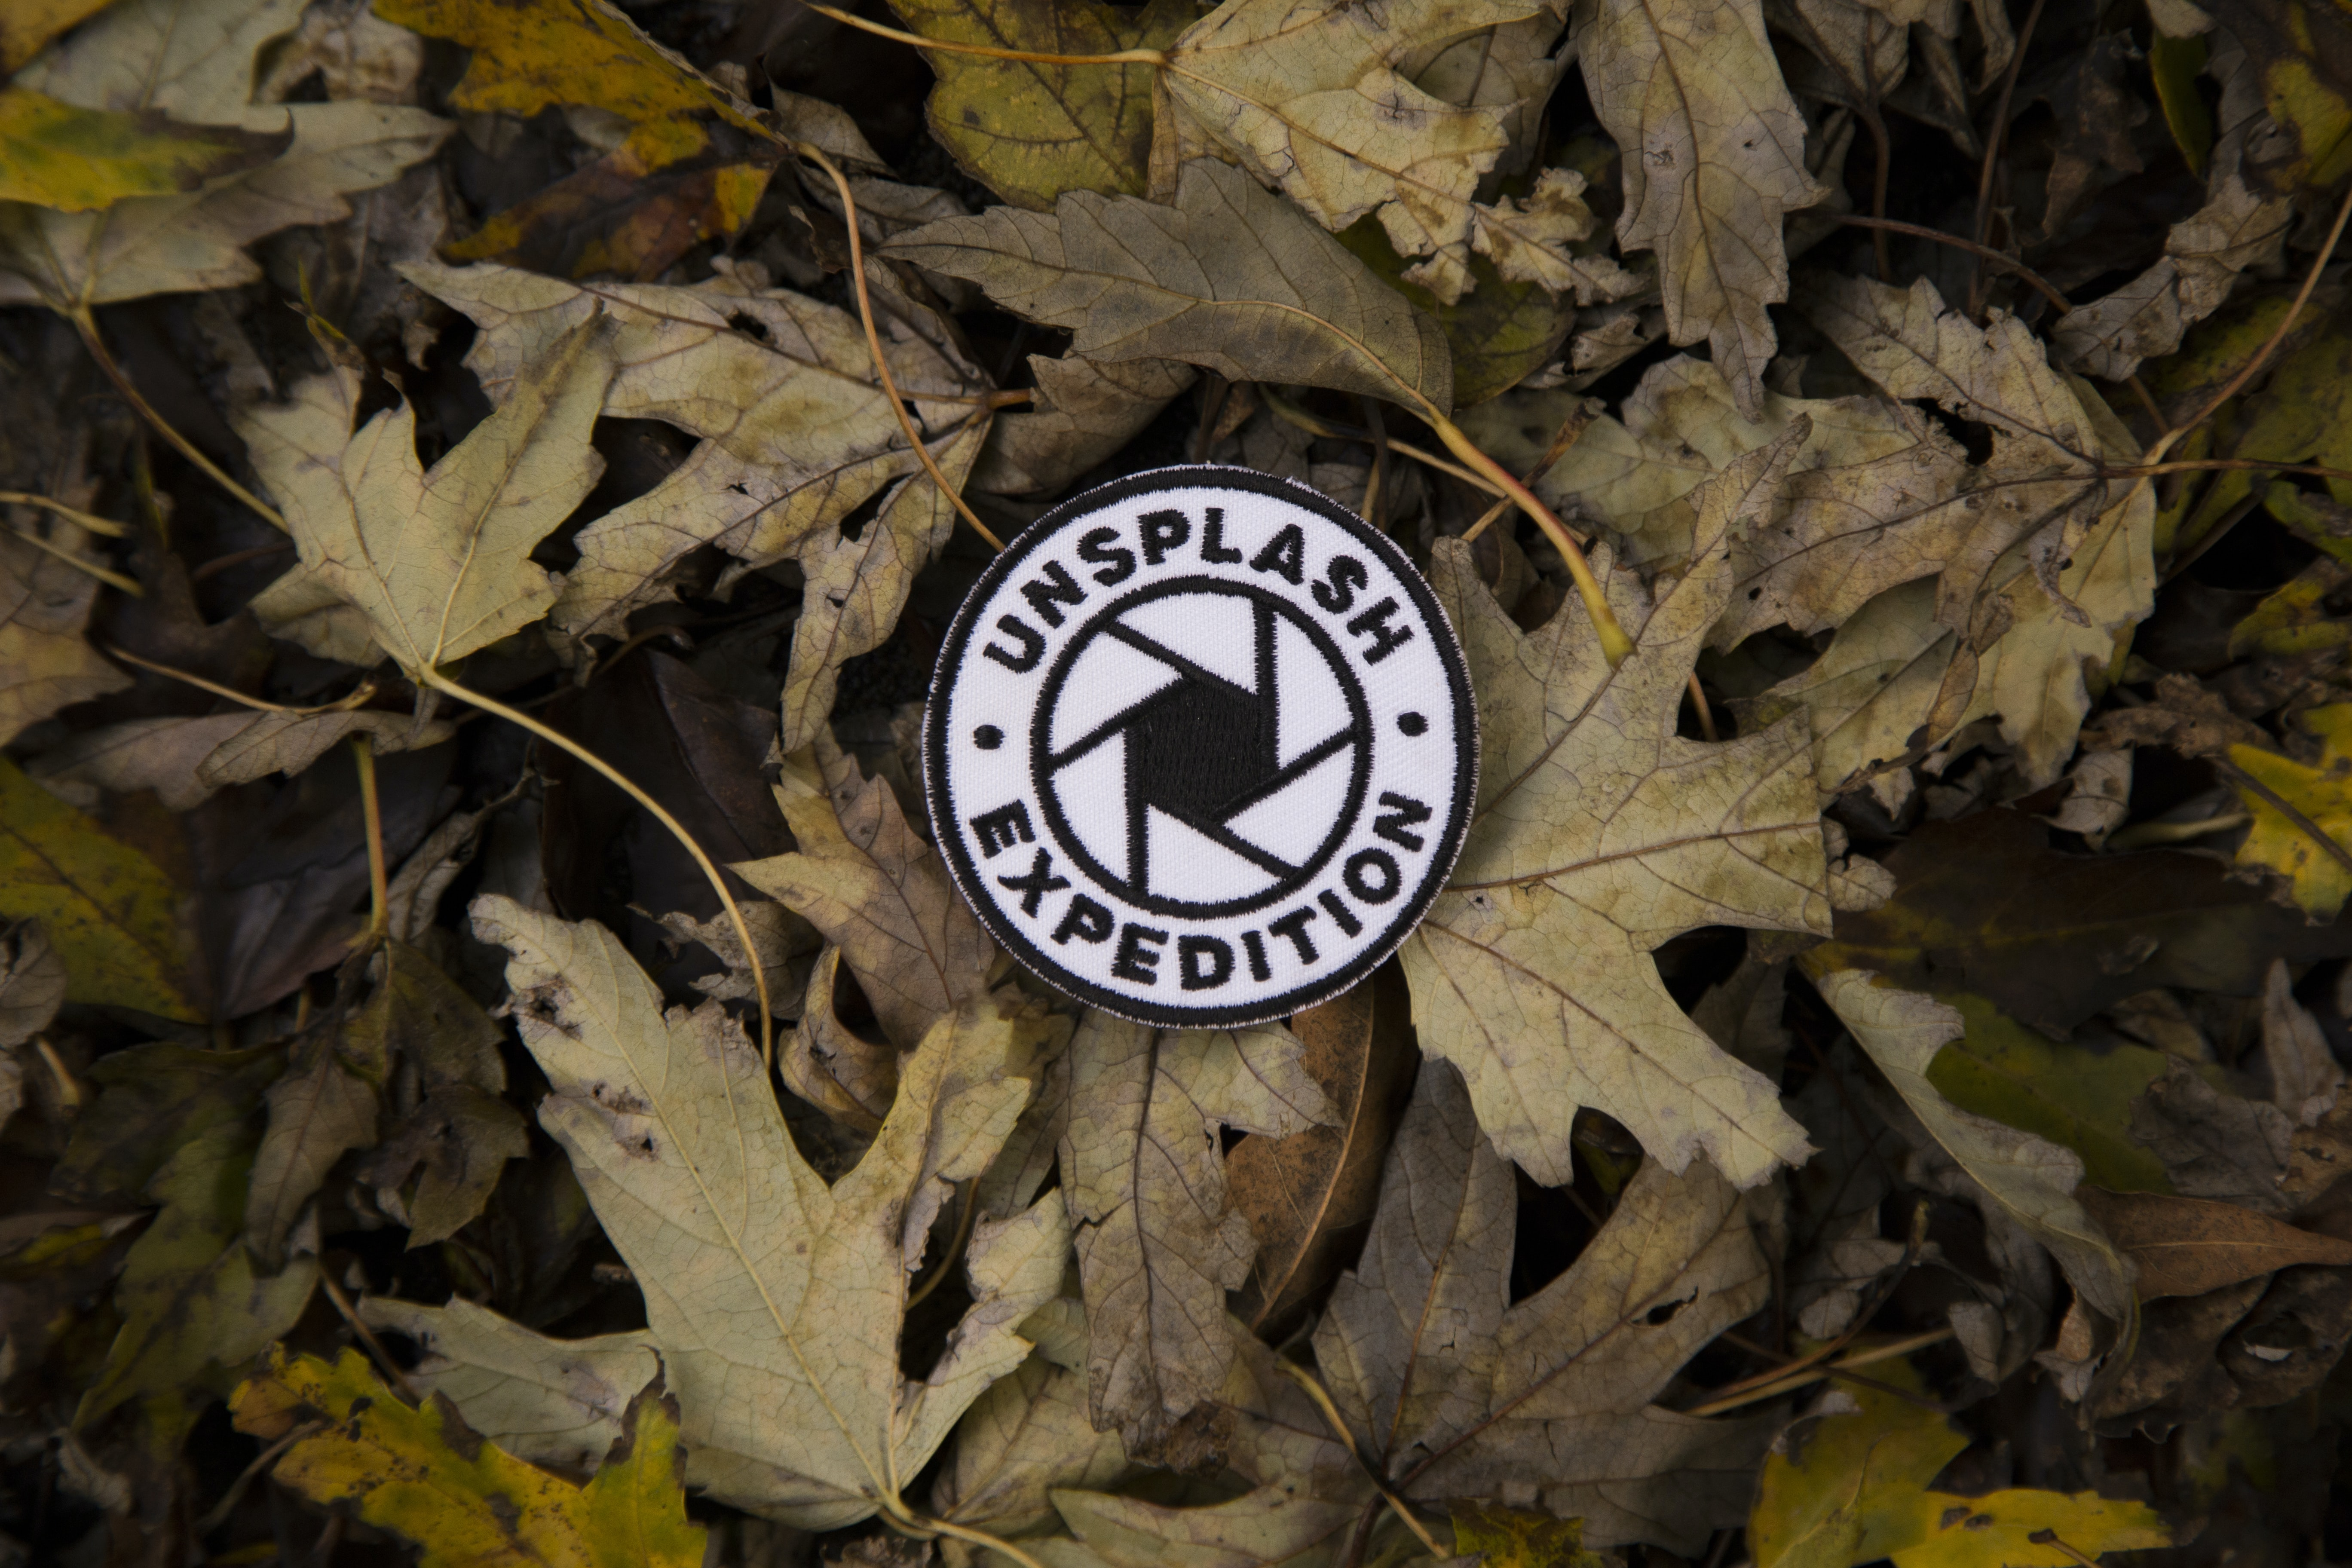 unsplash expedition patch on leaves